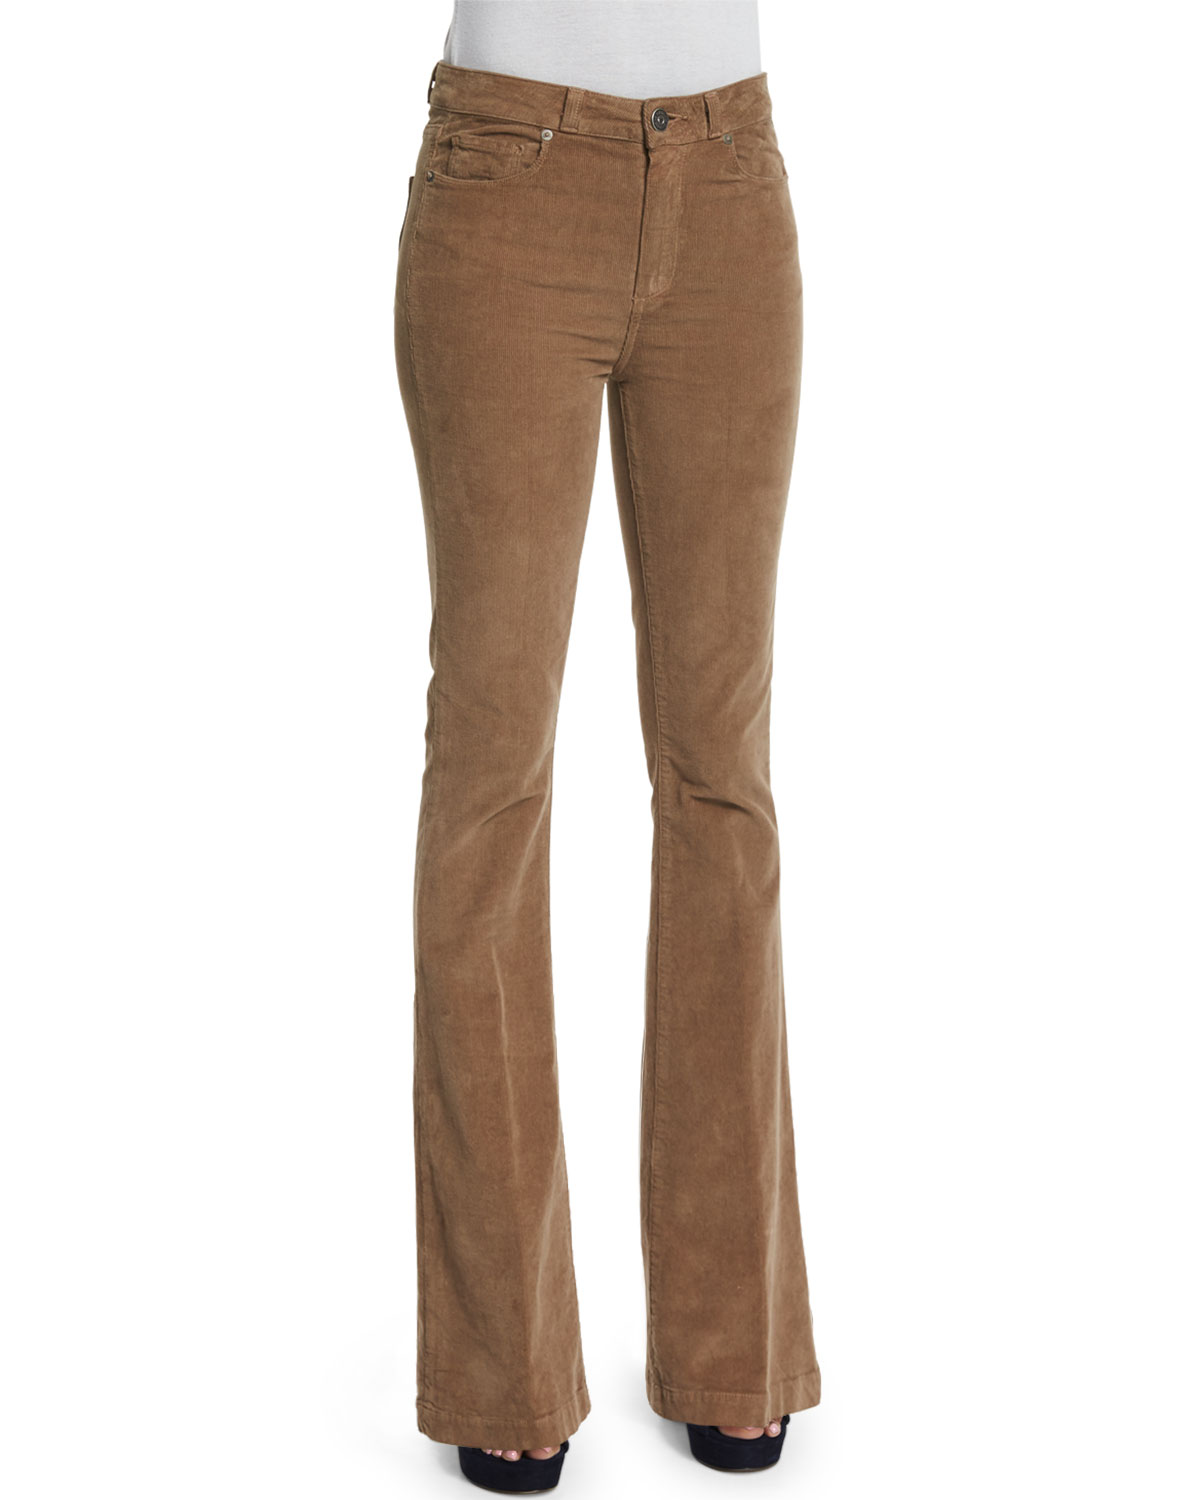 Bell Canyon High-Waist Pants, Tan